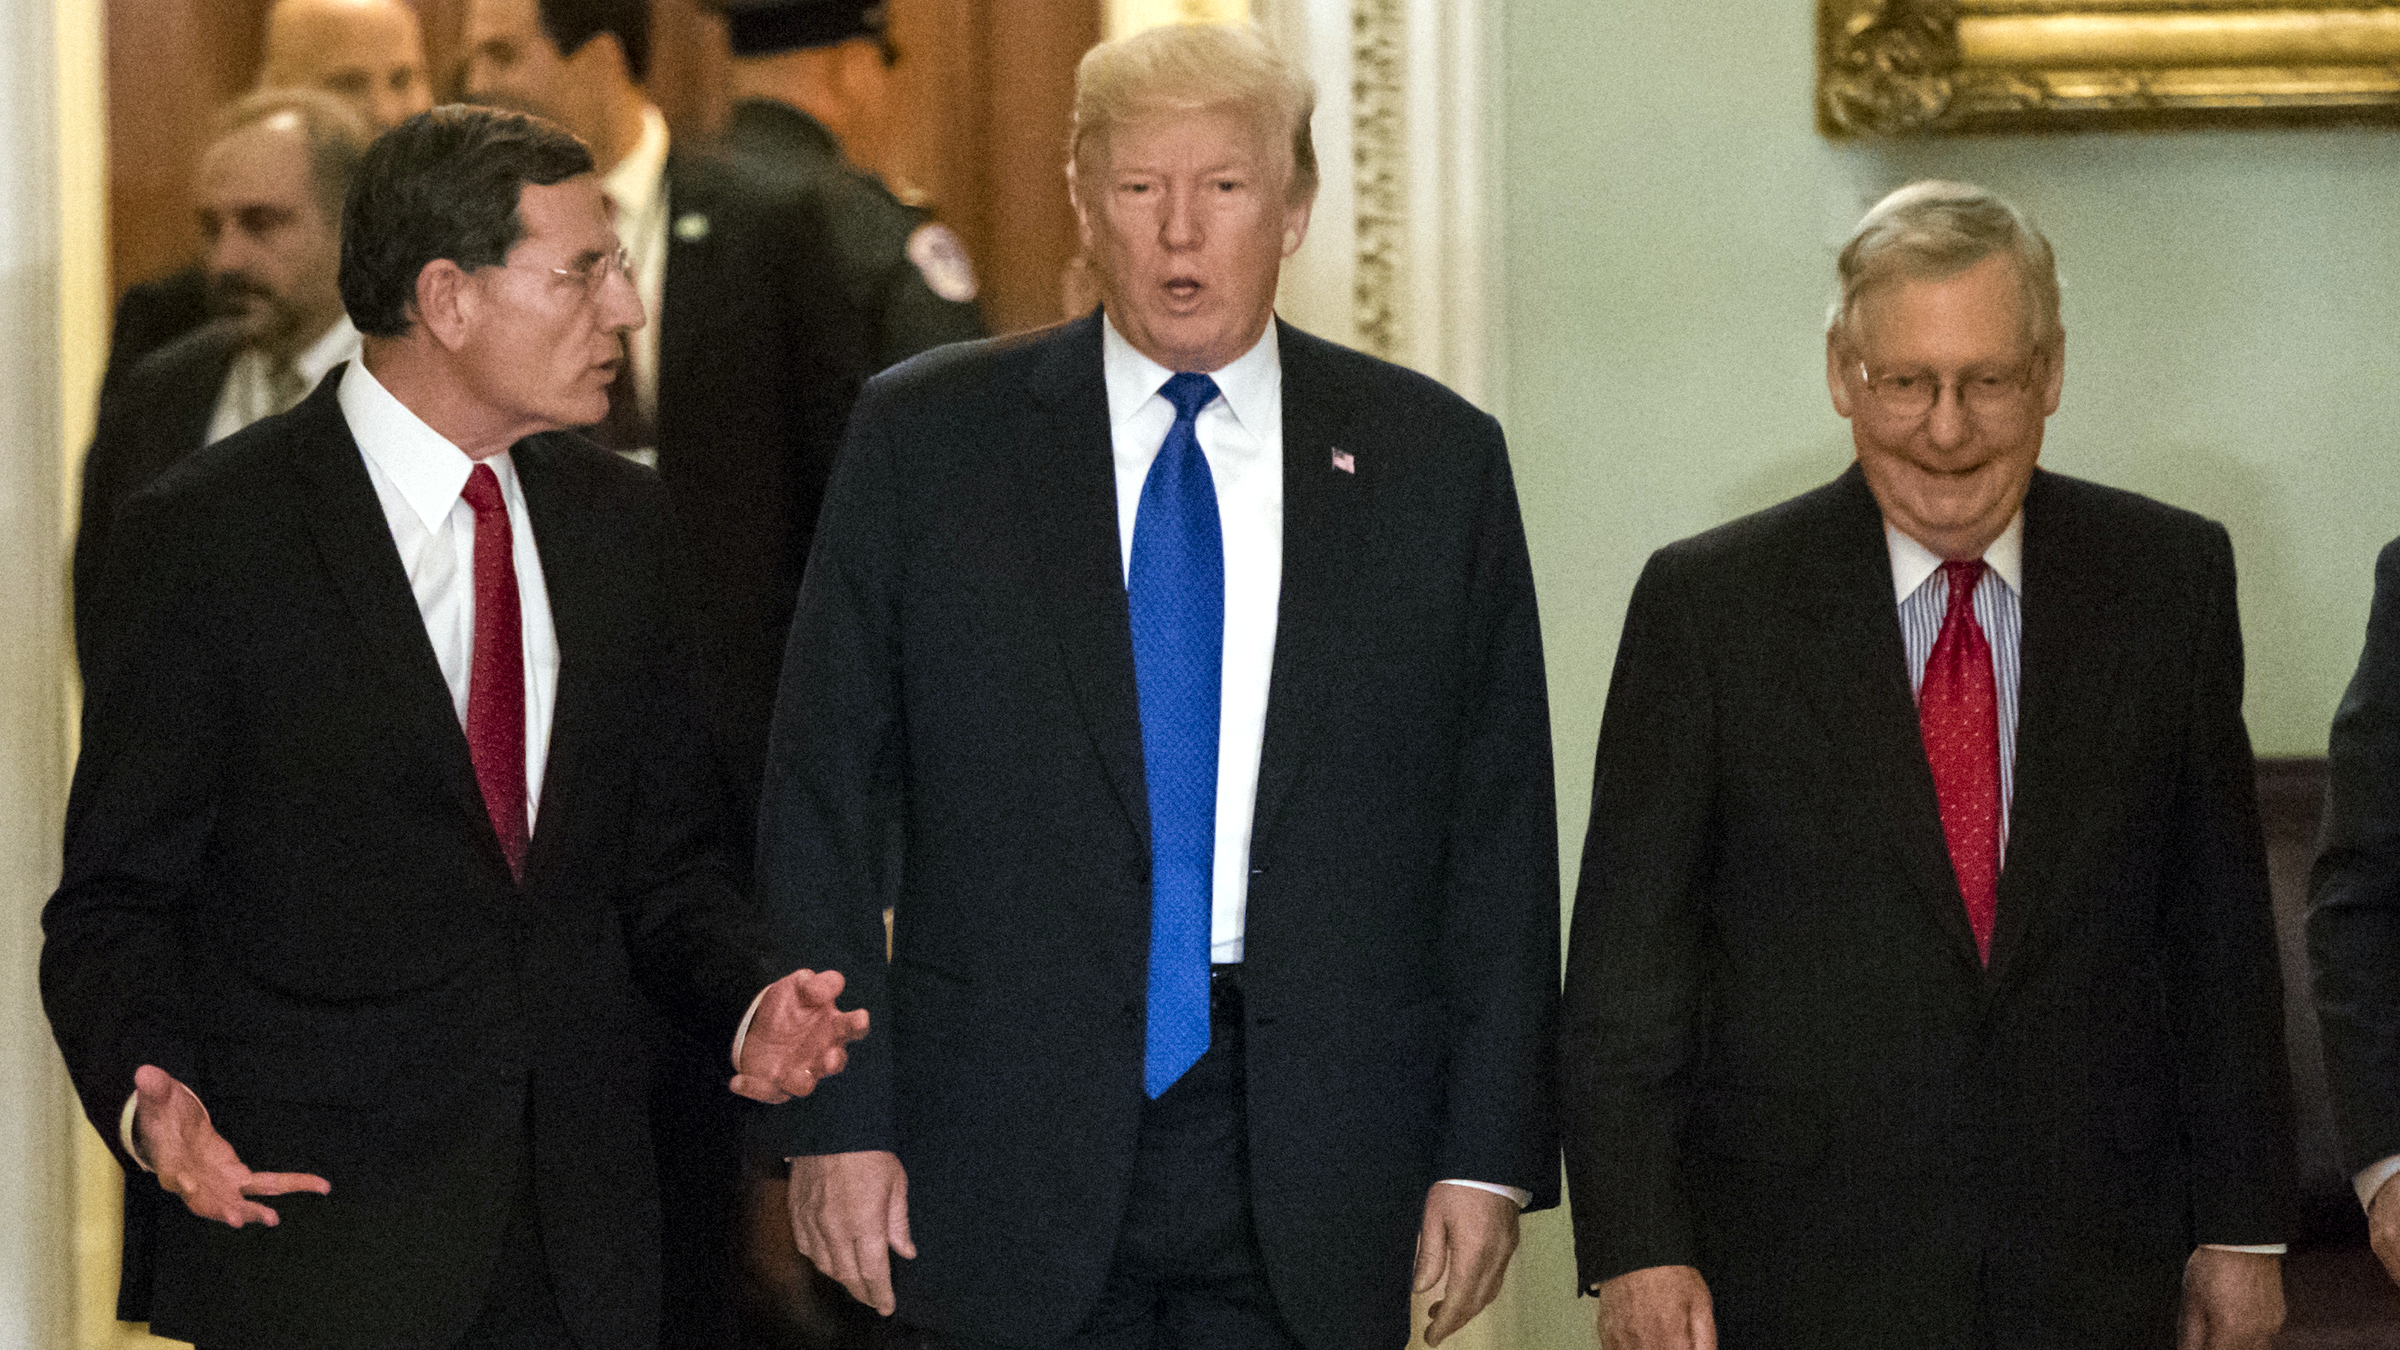 President Donald Trump, center, escorted by Sen. John Barrasso, R-Wyo., chairman of the Senate Republican Policy Committee, left, and Senate Majority Leader Mitch McConnell, R-Ky., right, arrives at the Capitol to meet with GOP lawmakers about moving his agenda and passing the Republican tax bill, in Washington, Tuesday, Nov. 28, 2017.